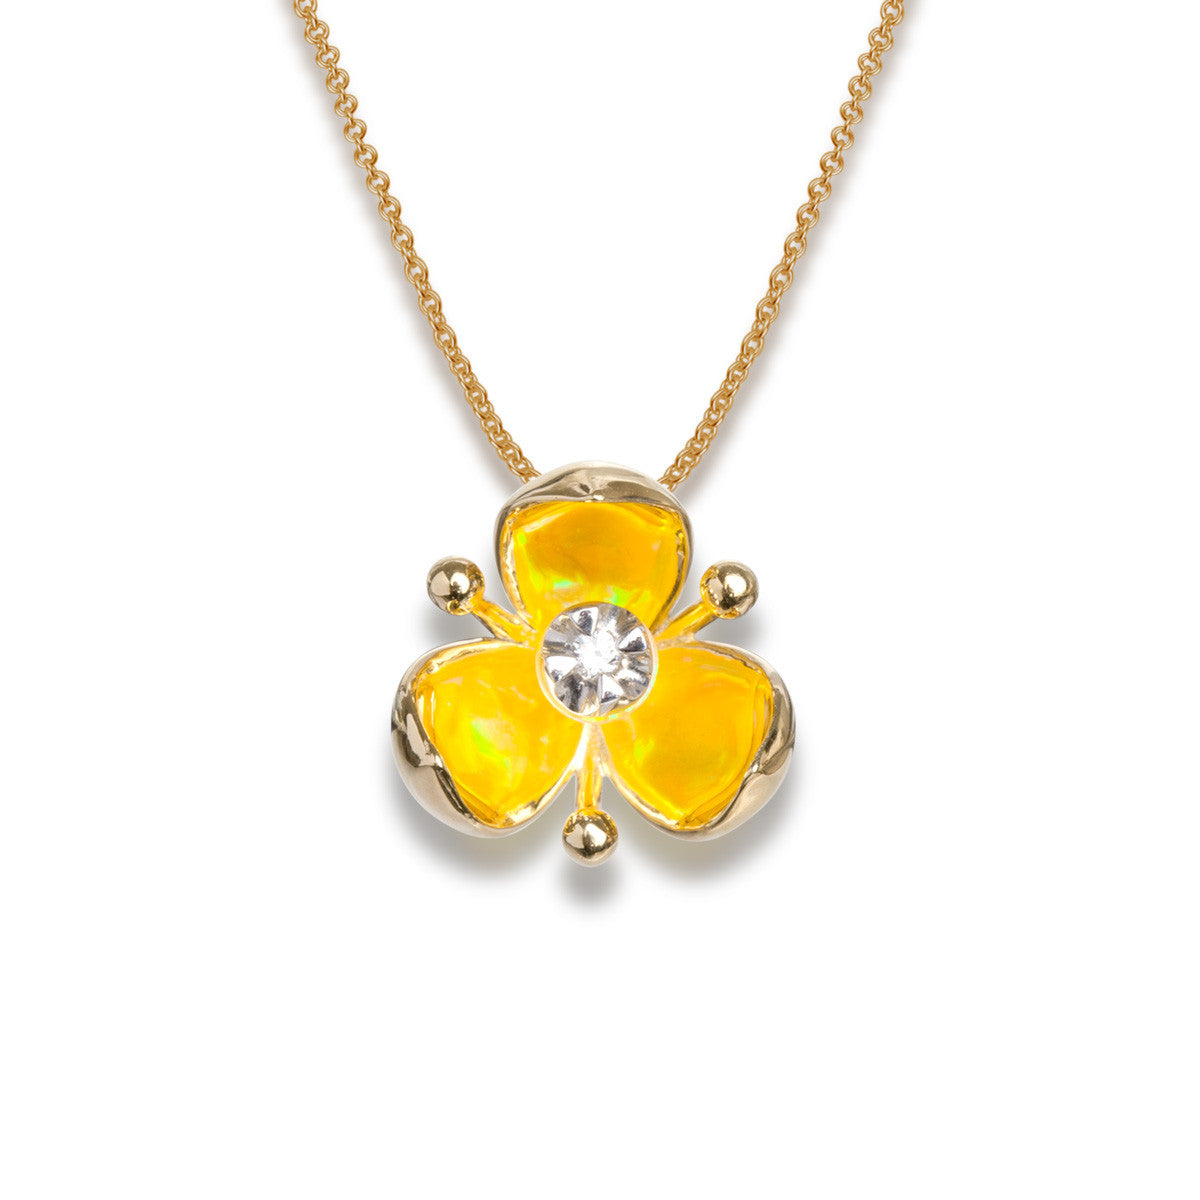 Illusia Diamond Pendant - Summer Yellow